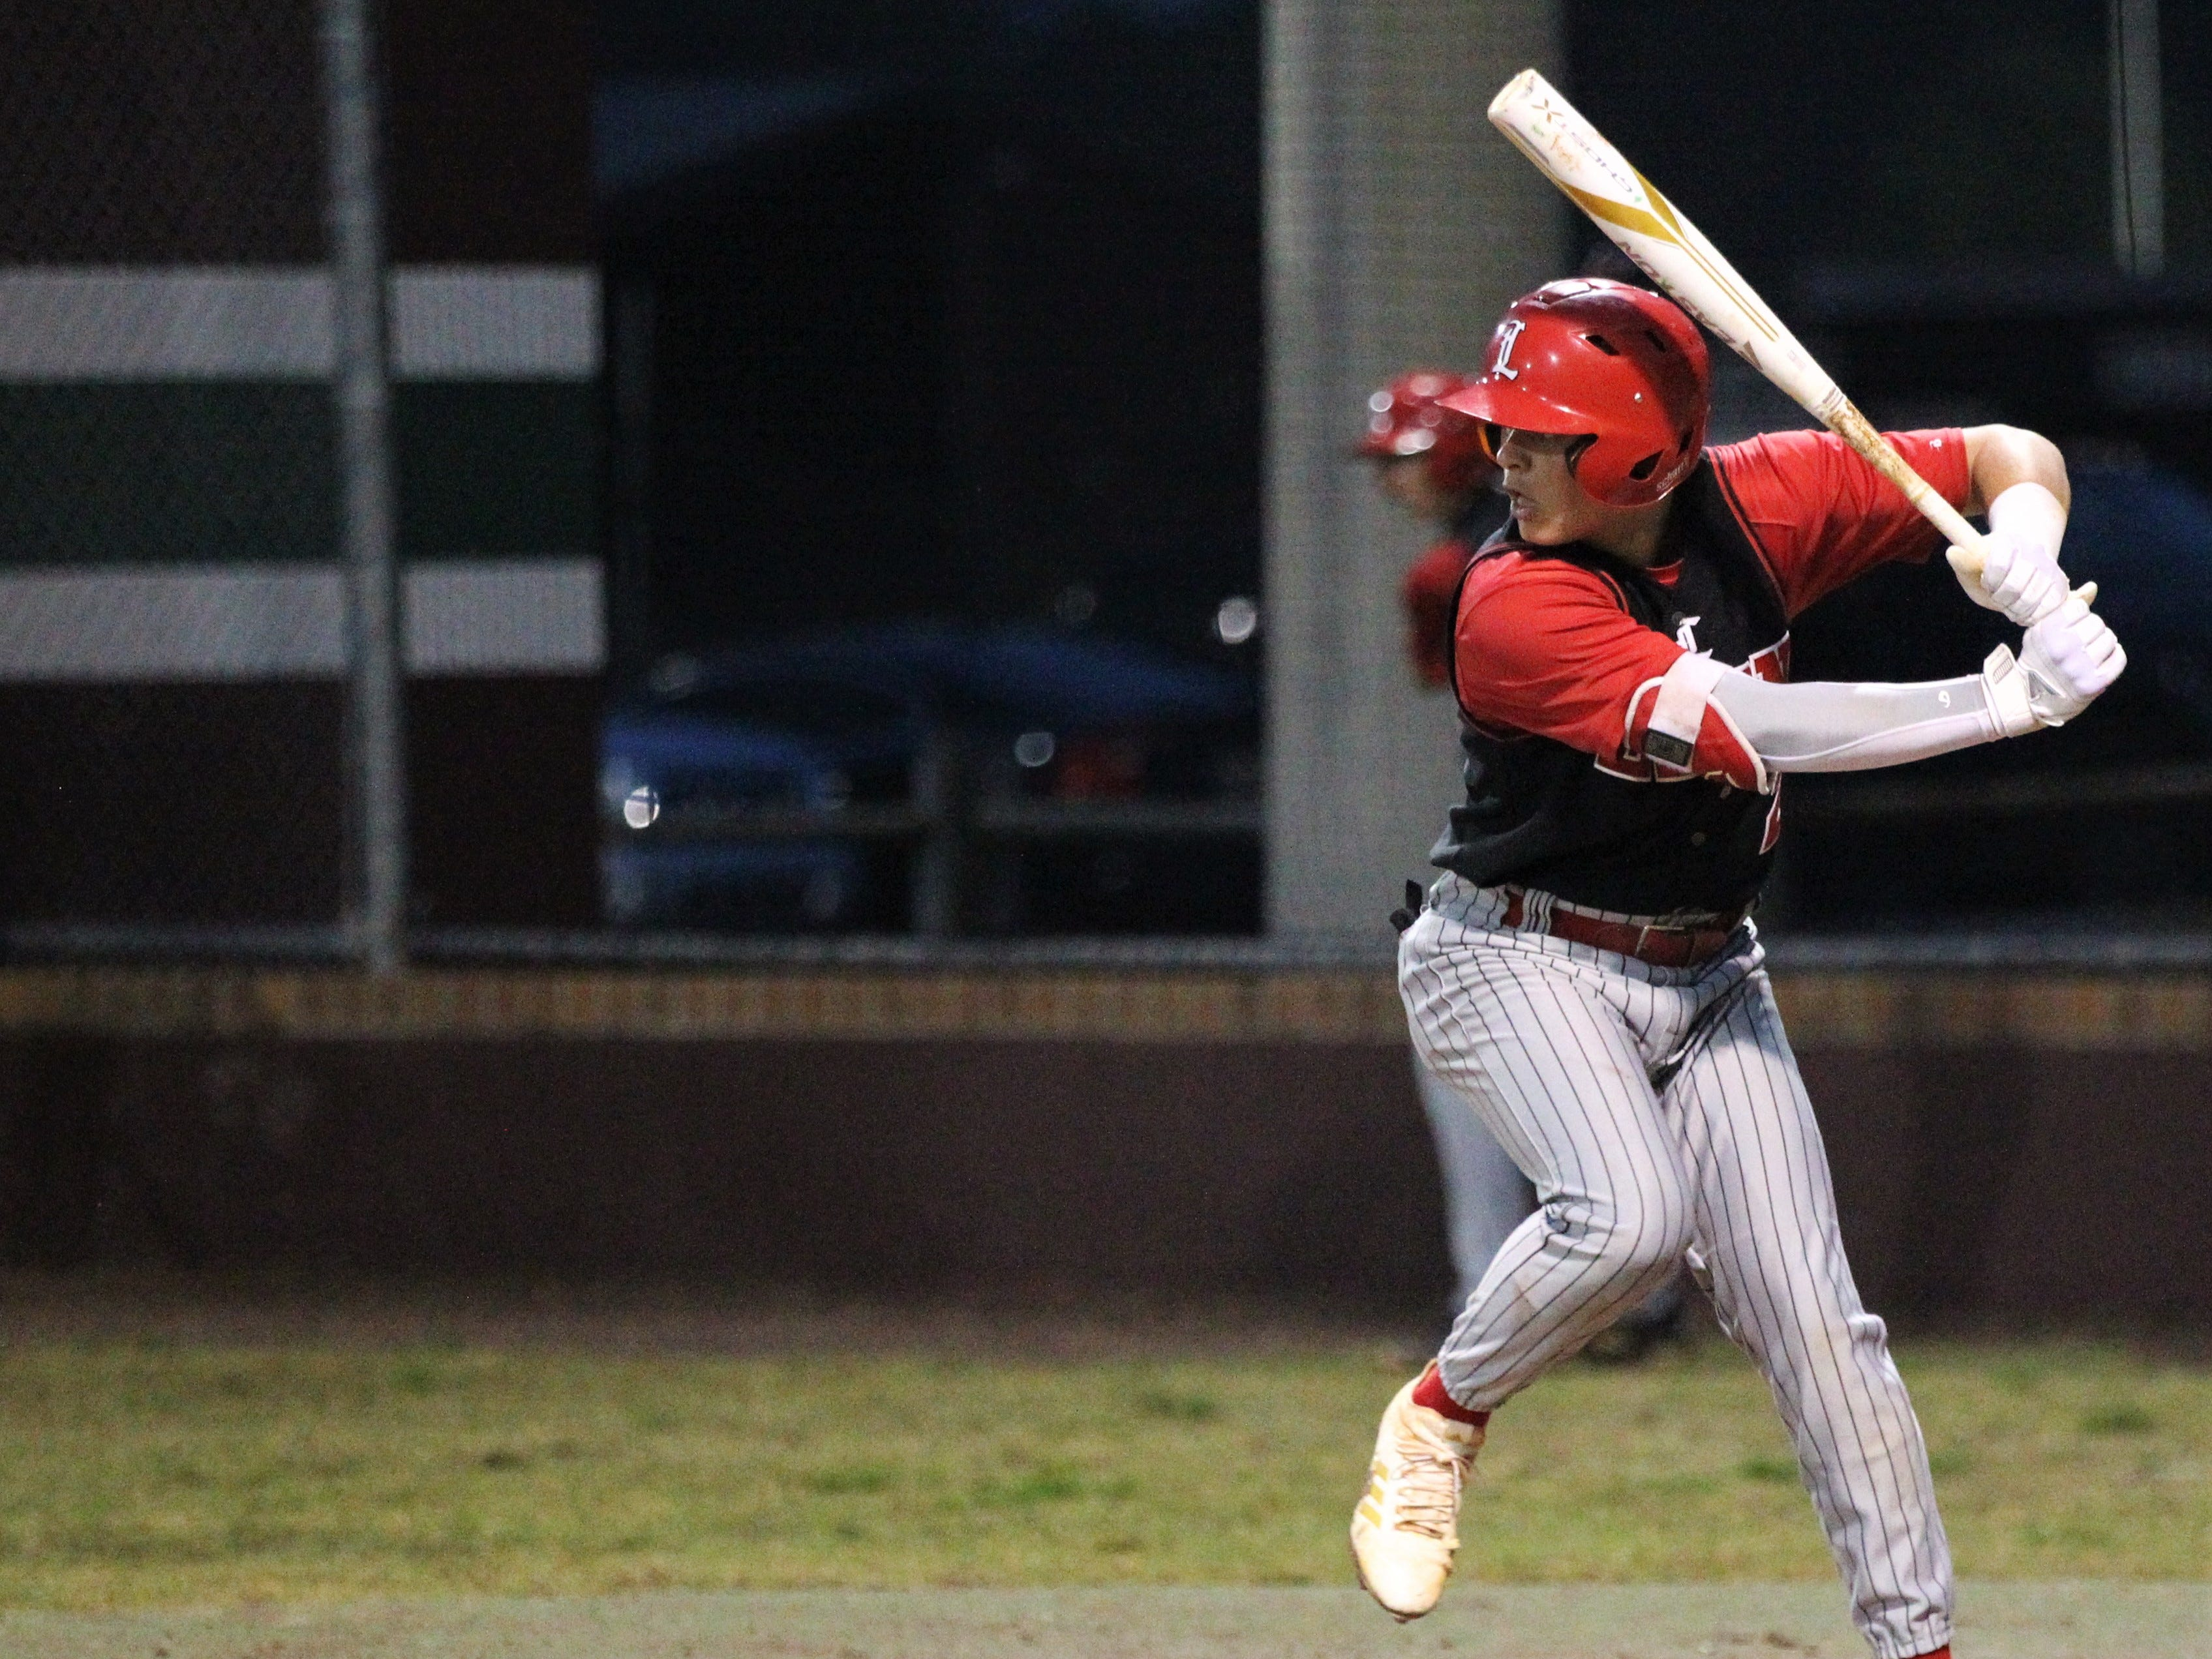 Leon junior Paxton Tomaini bats as Chiles won an 11-6 home game against Leon on Friday, April 5, 2019, to force a season split. The Lions won 3-0 earlier in the week.